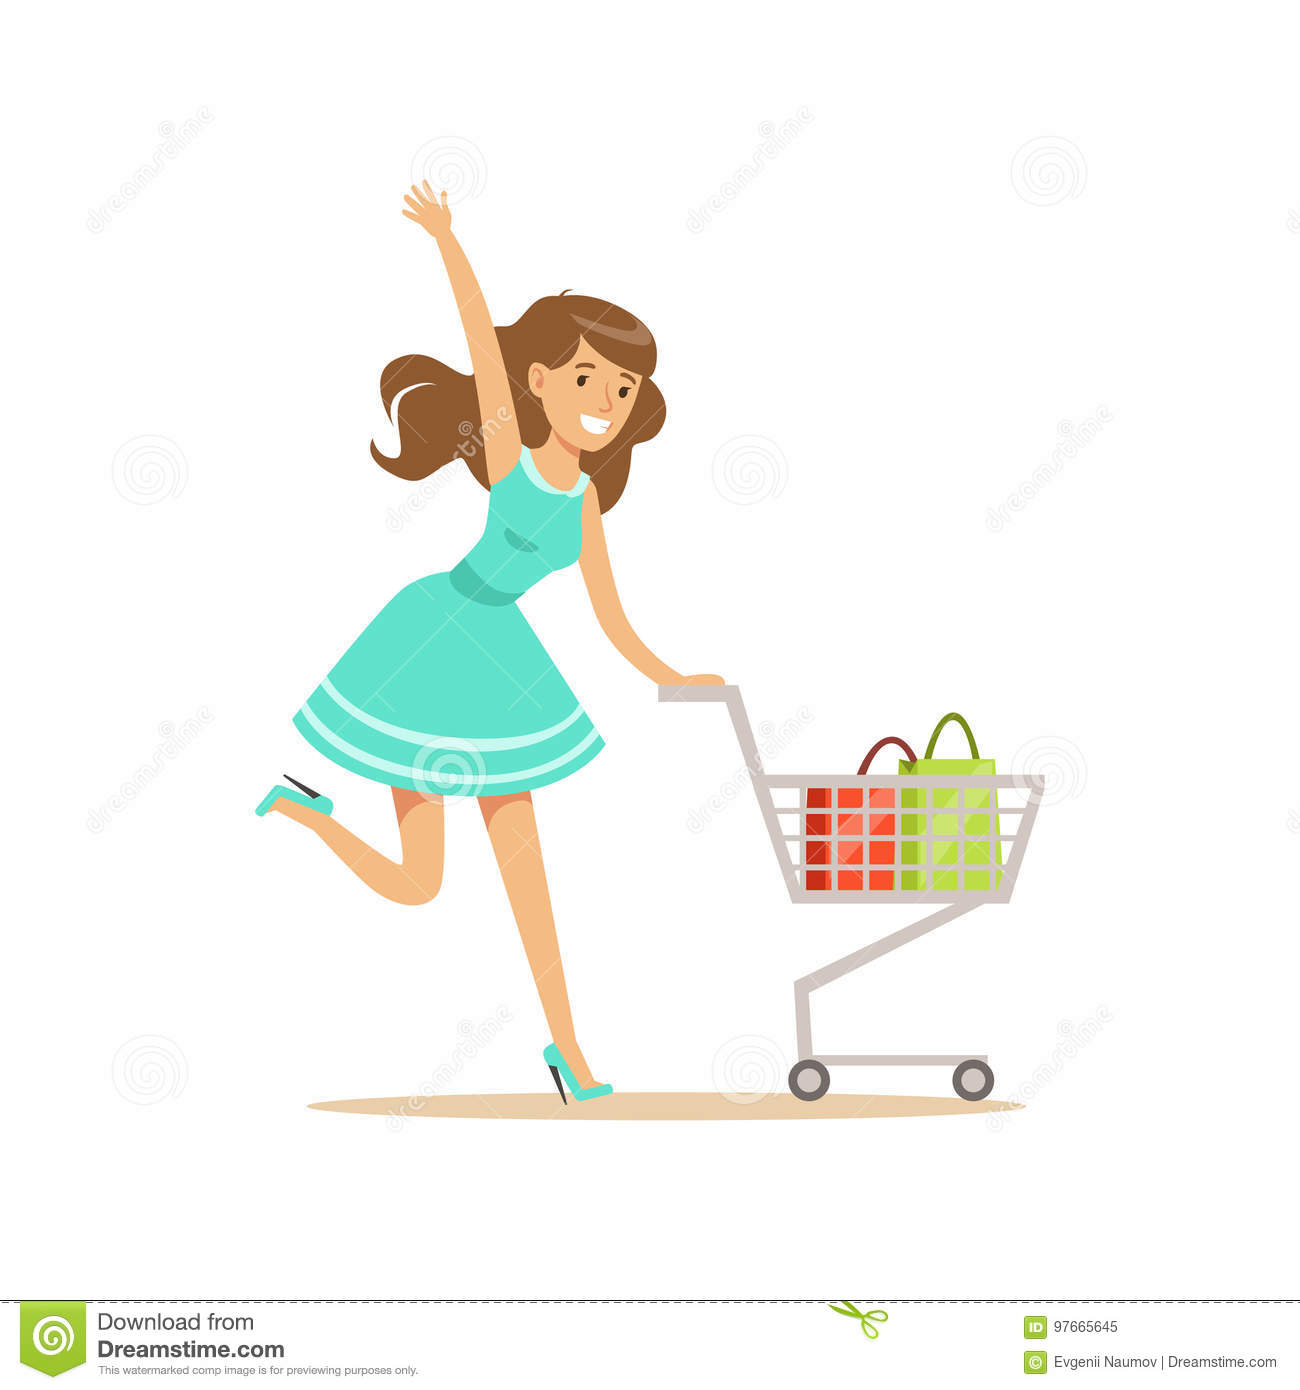 Happy woman in a blue dress running with shopping cart, shopping in grocery store, supermarket or retail shop, colorful